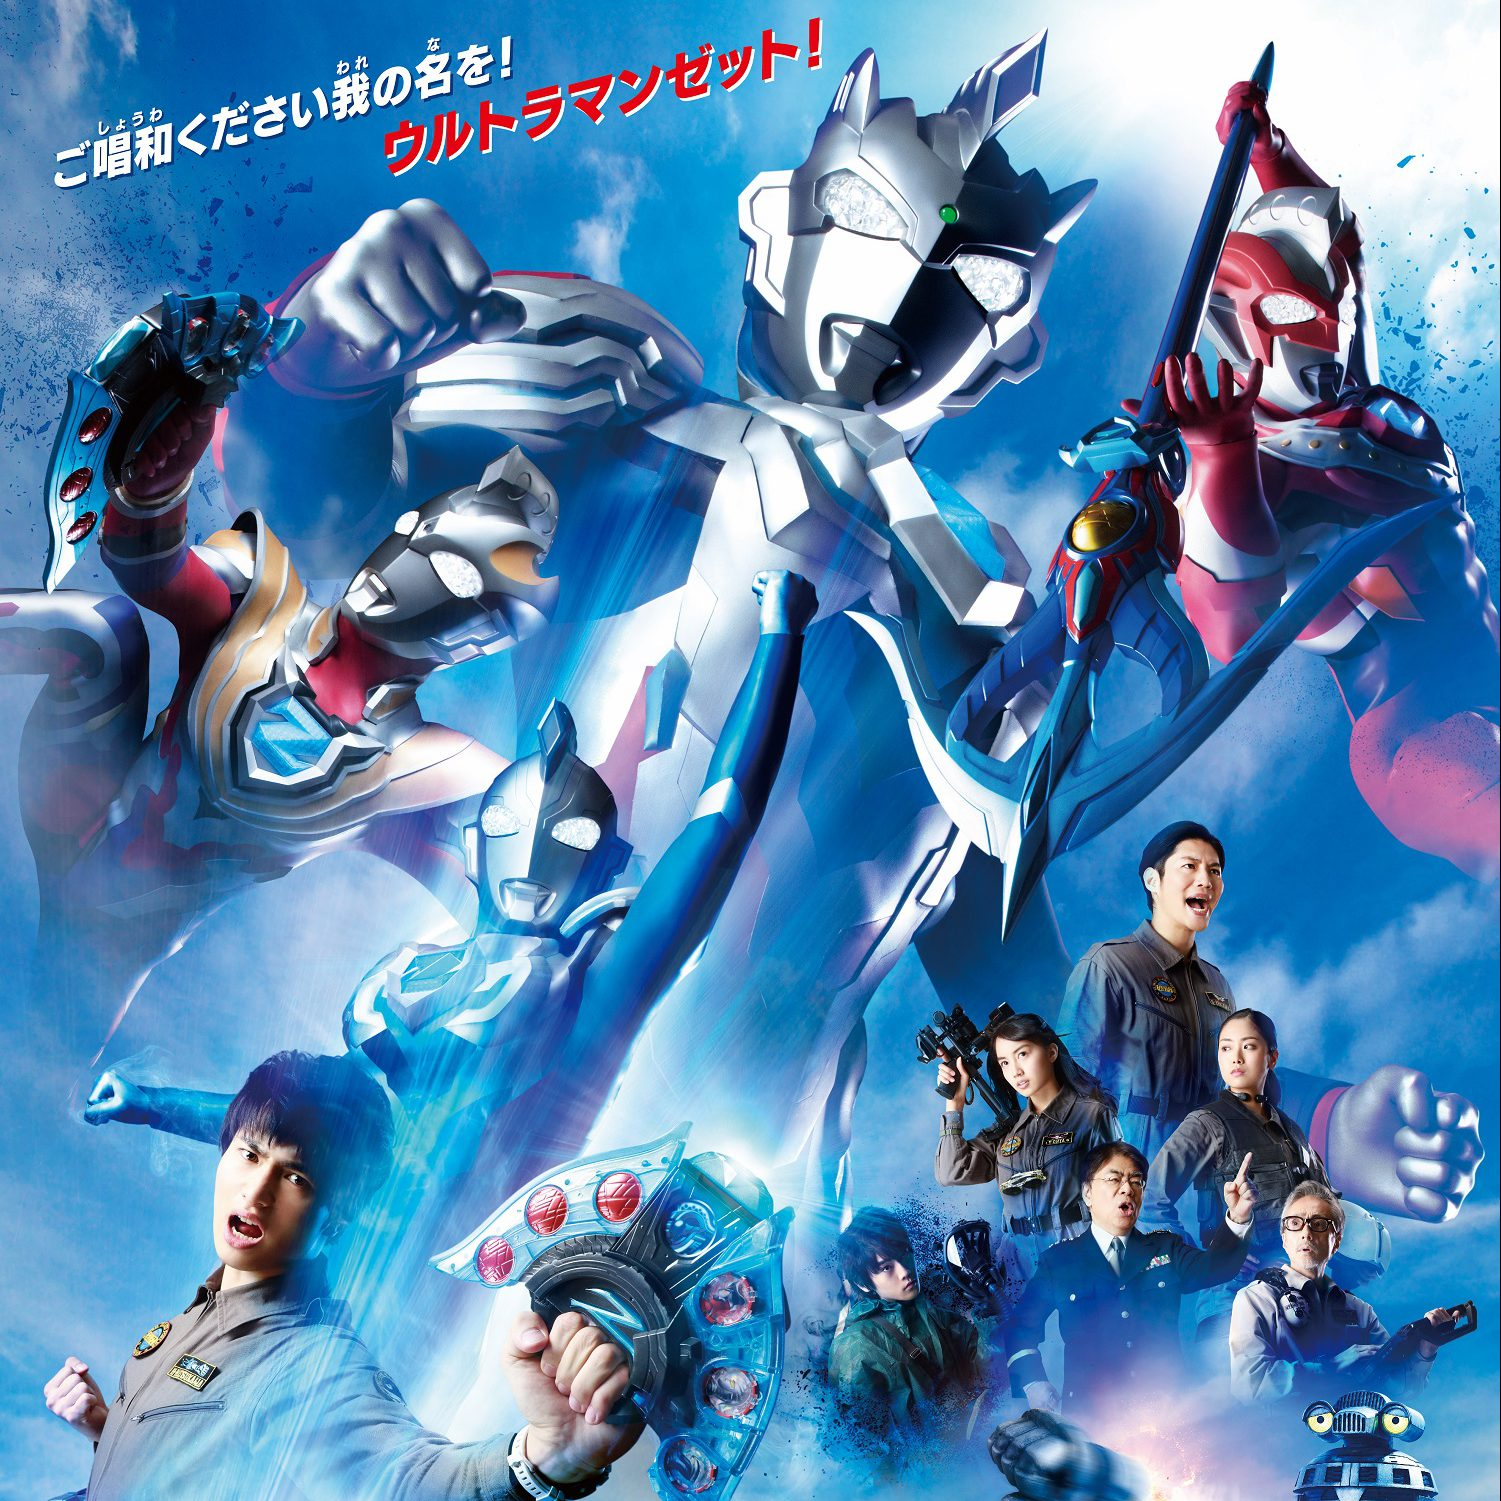 Ultraman Z Available On Ultraman Official Youtube Channel With English Sub Simulcast And Catch Up Information In Asia